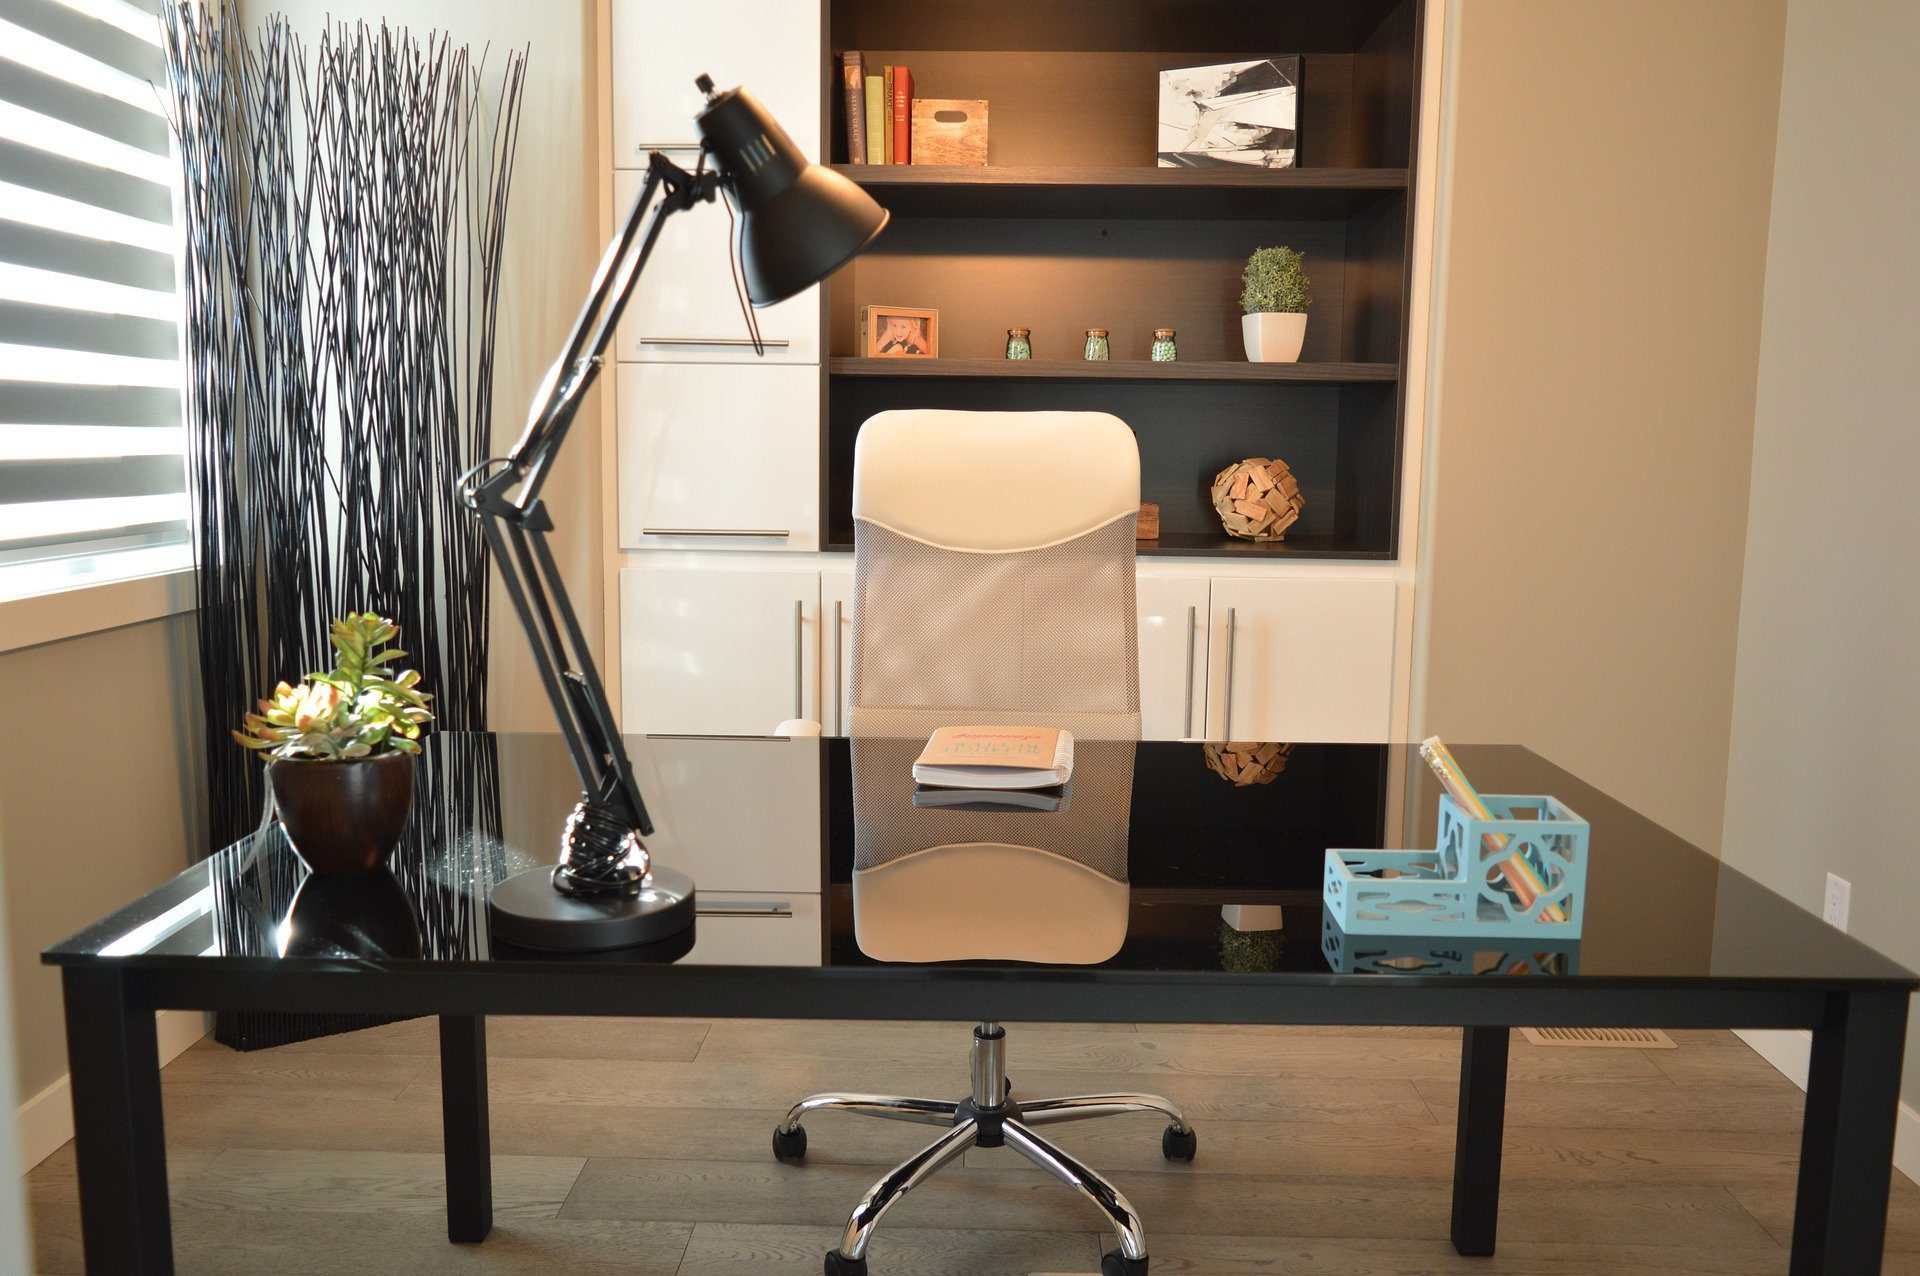 Tips for Optimizing Your Home Office